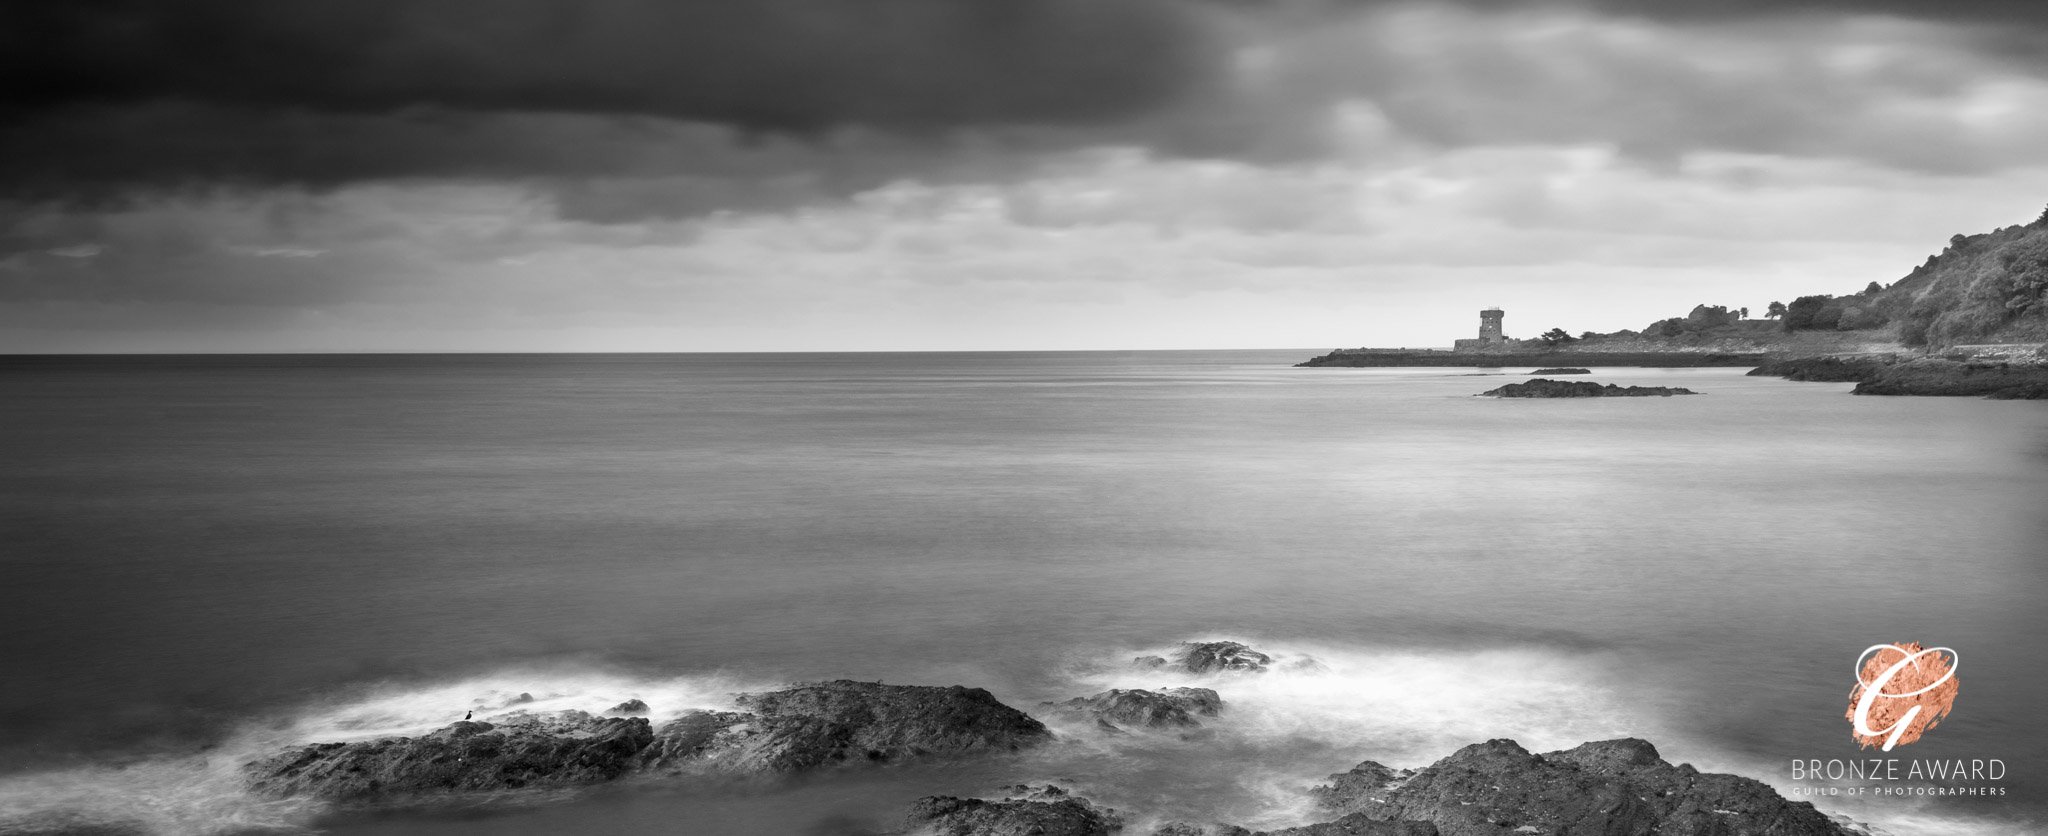 A black and white image of sea with Archirondel Tower on the horizon and rocks in the foreground and a dramatic sky.